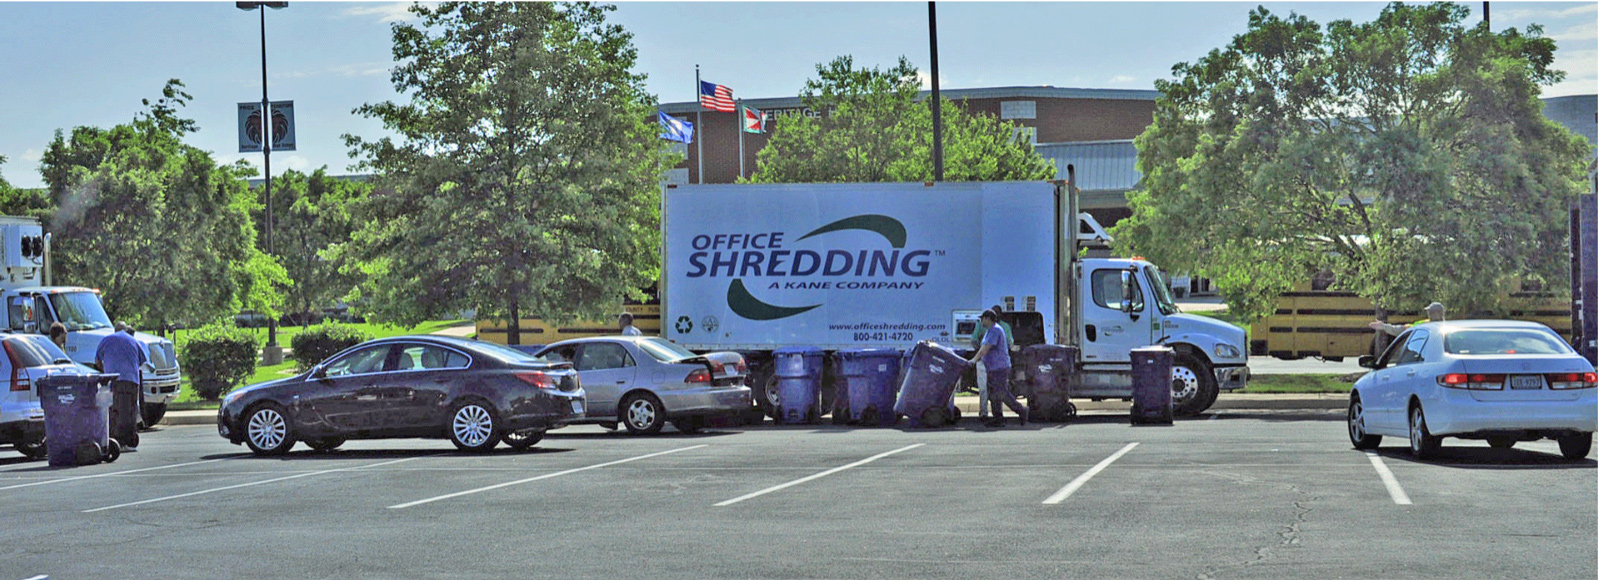 Free Community Document Shred Event Scheduled for Saturday, June 22, 2019